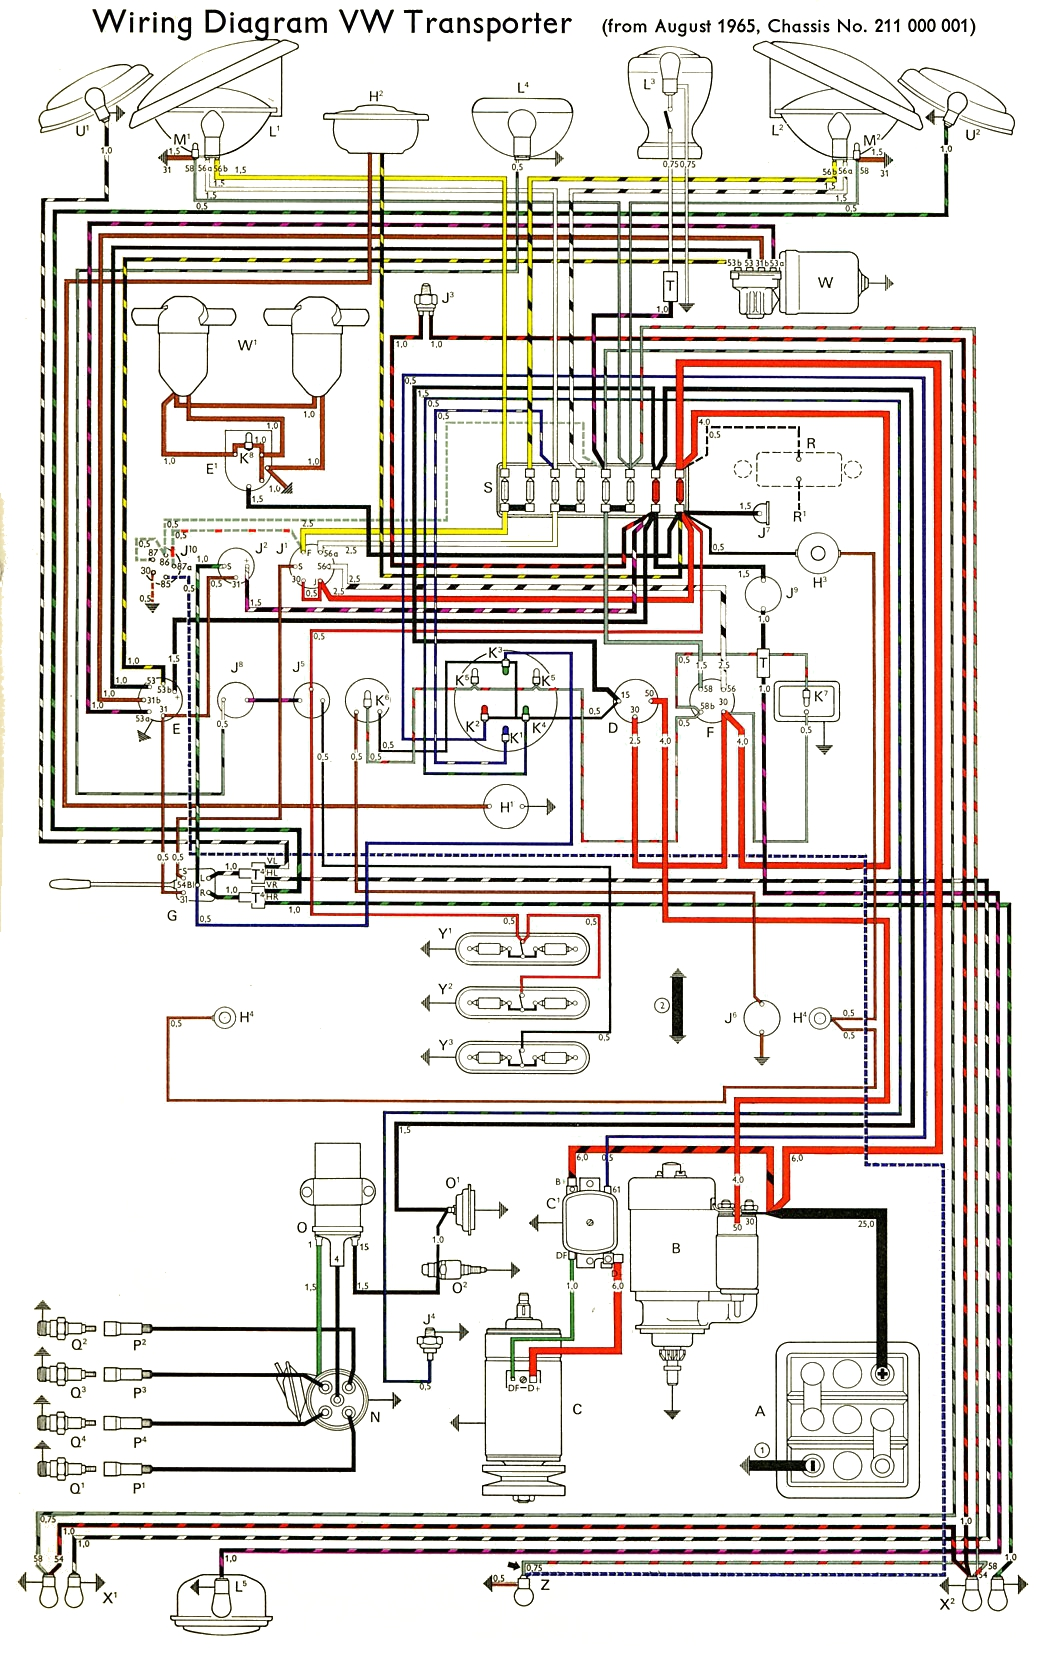 hight resolution of thesamba com type 2 wiring diagrams 1974 vw beetle fuse box diagram 2006 vw beetle fuse